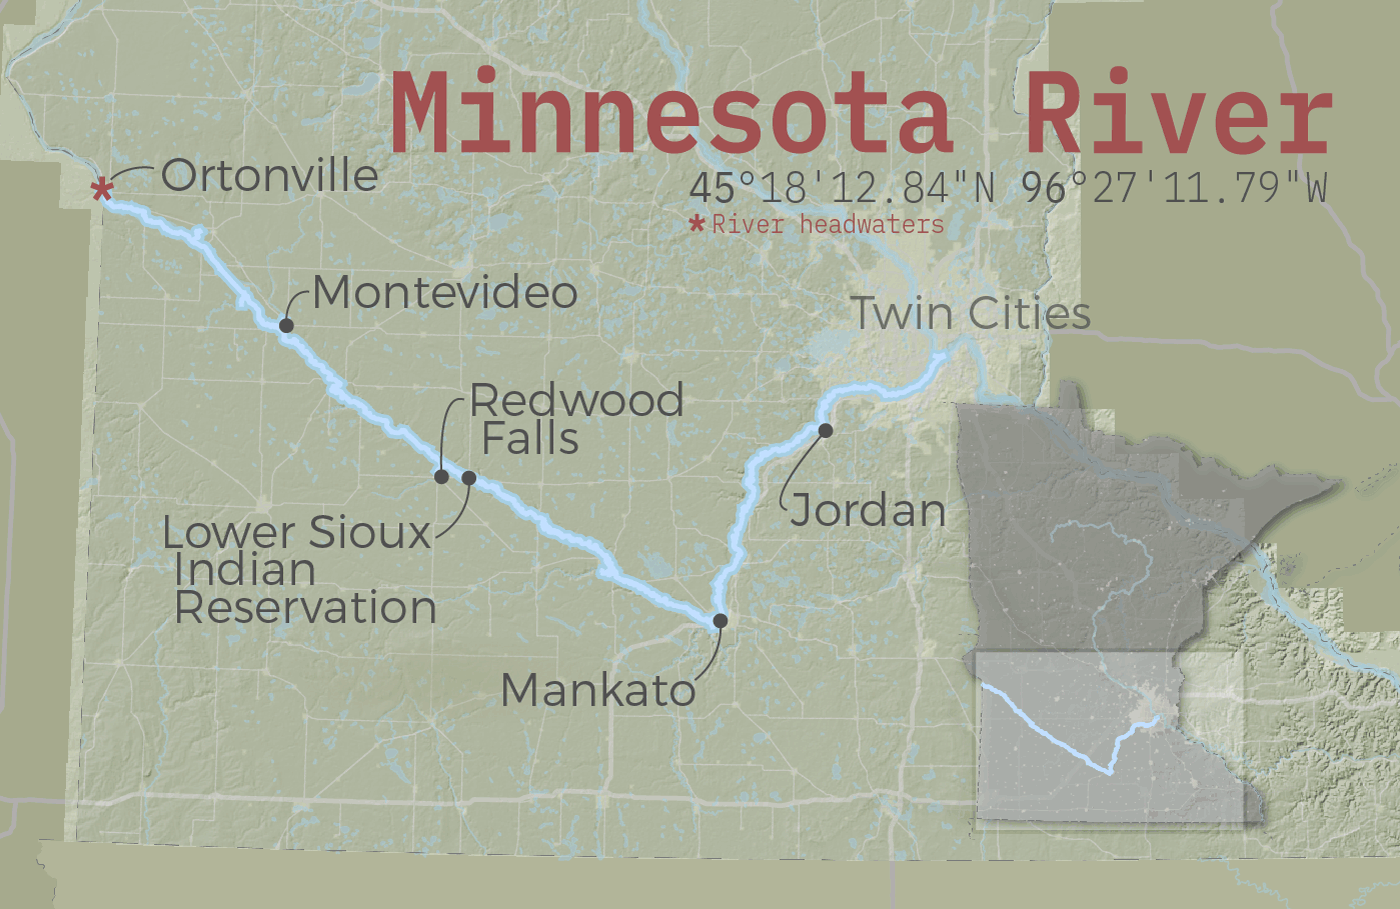 The Minnesota River crosses the state, emptying into the Mississippi River